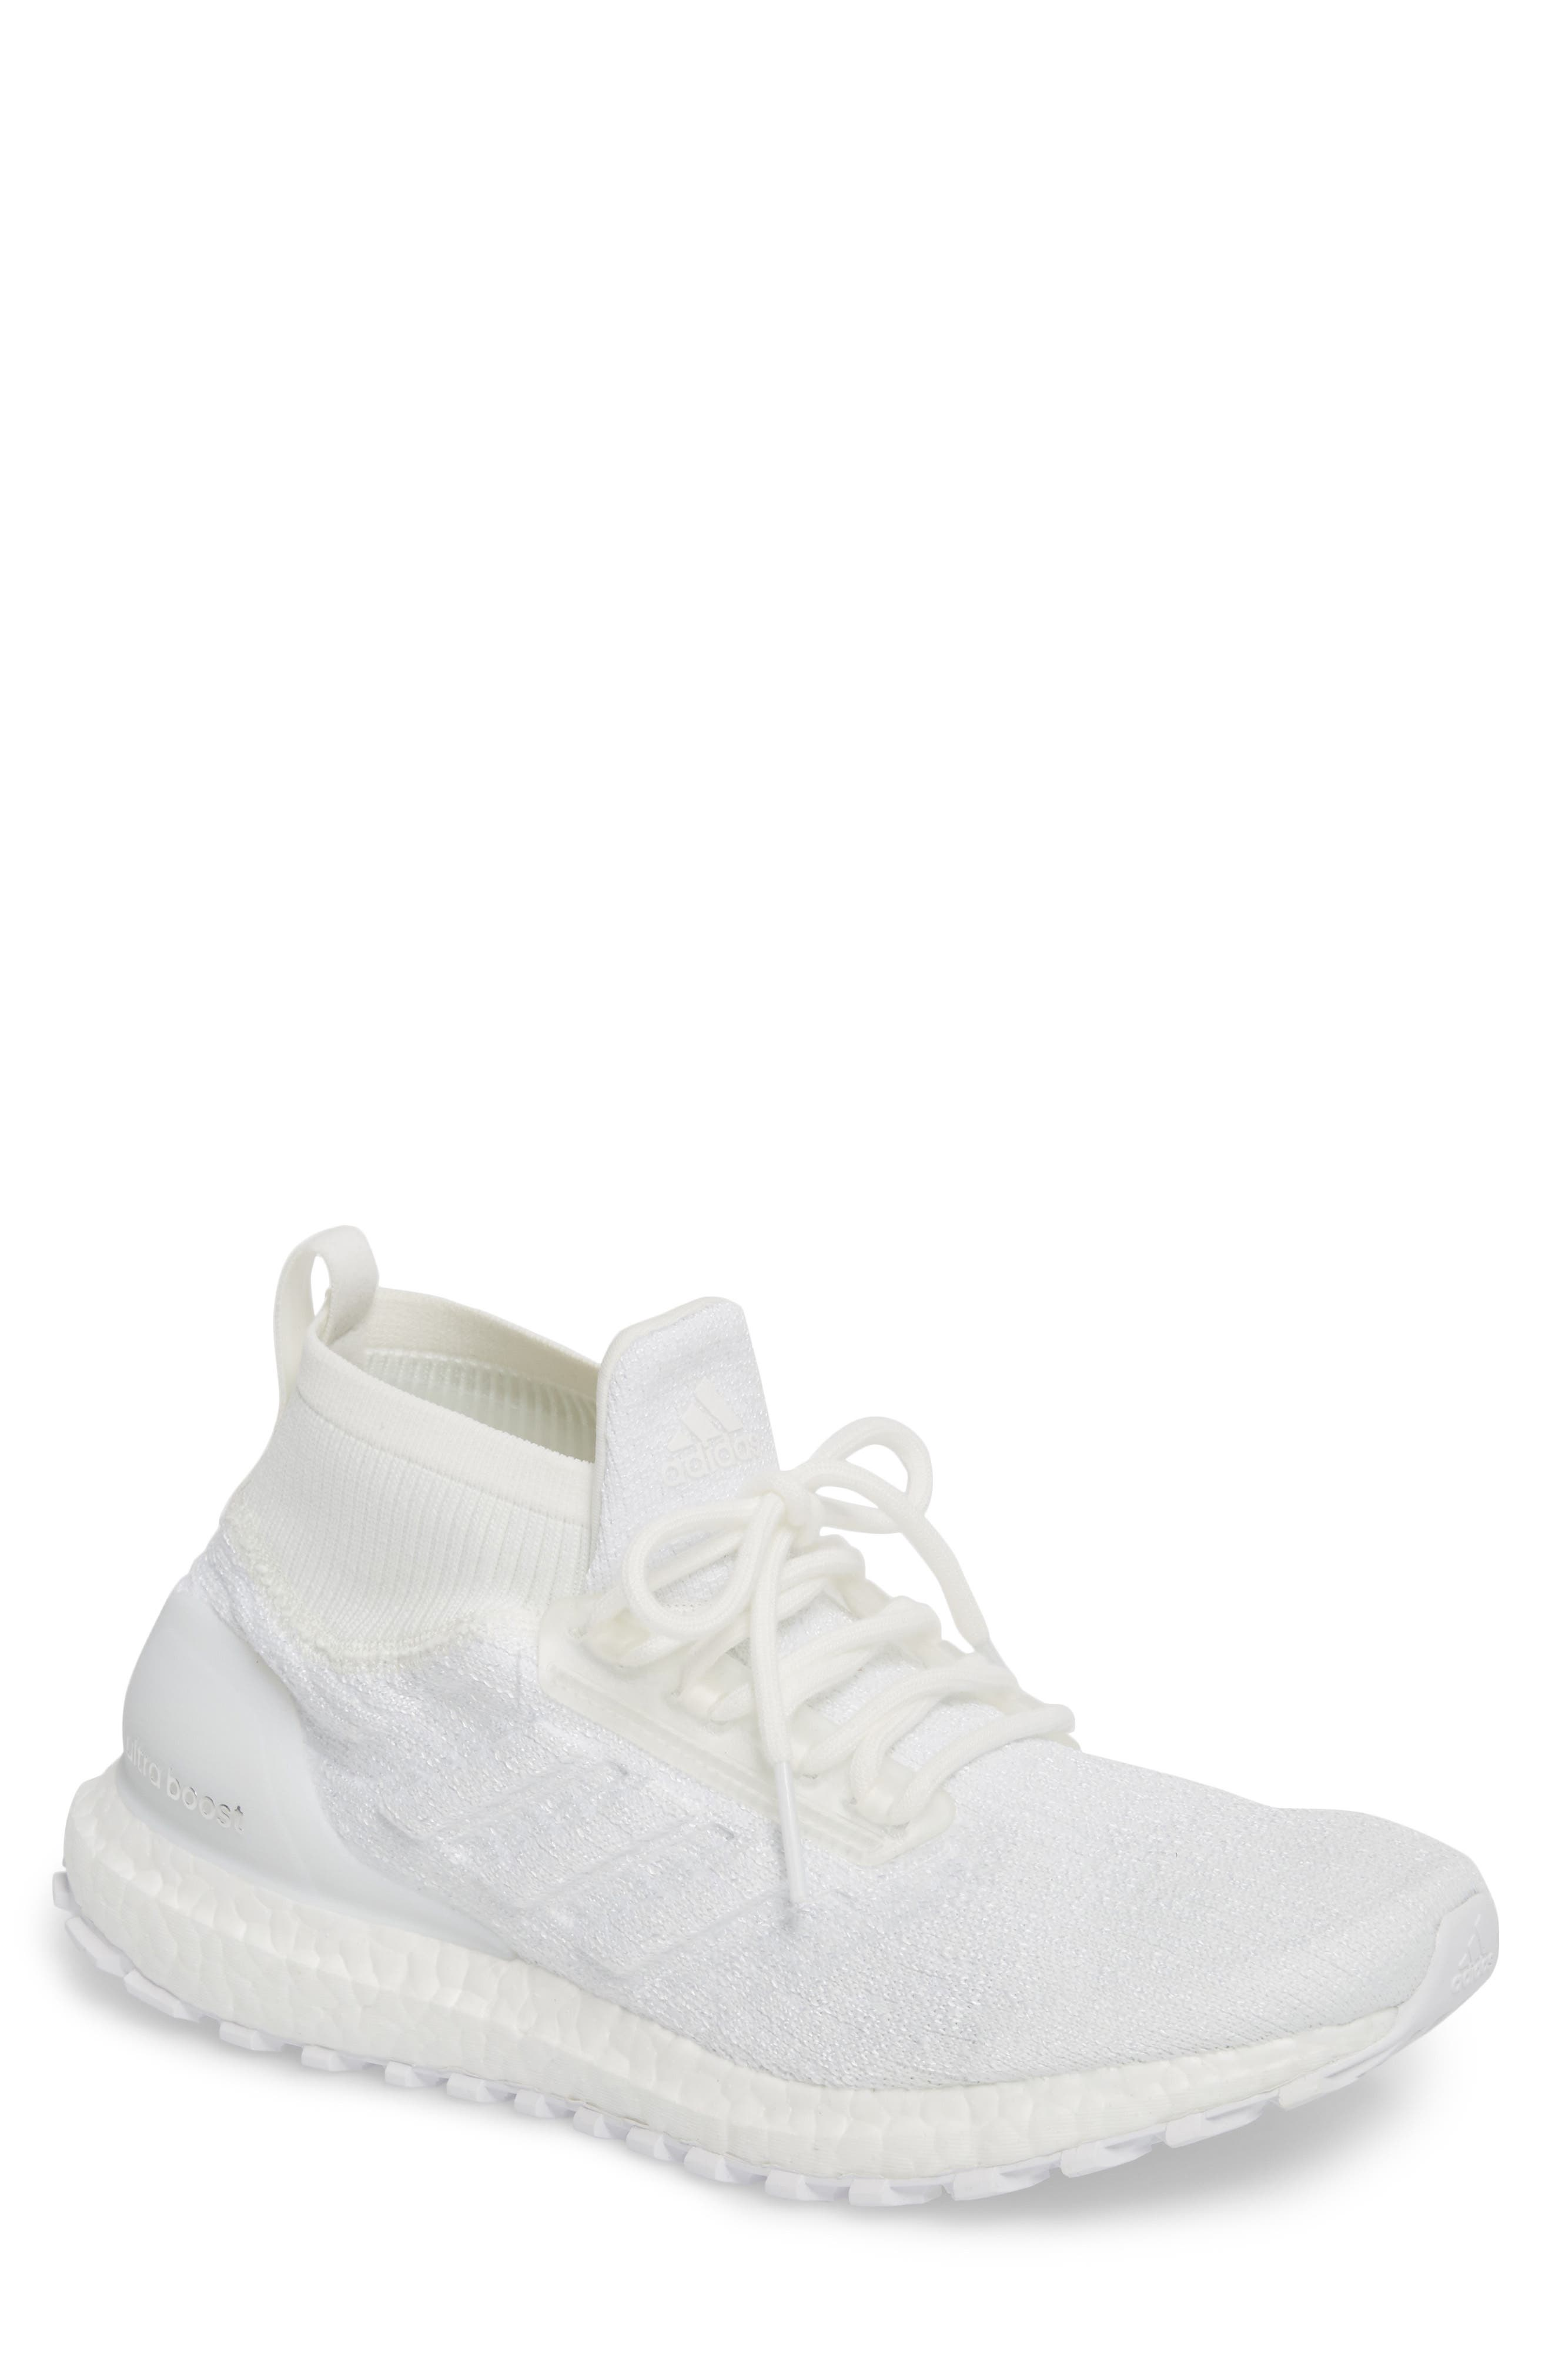 UltraBoost All Terrain Water Resistant Running Shoe,                         Main,                         color, Non-Dyed White